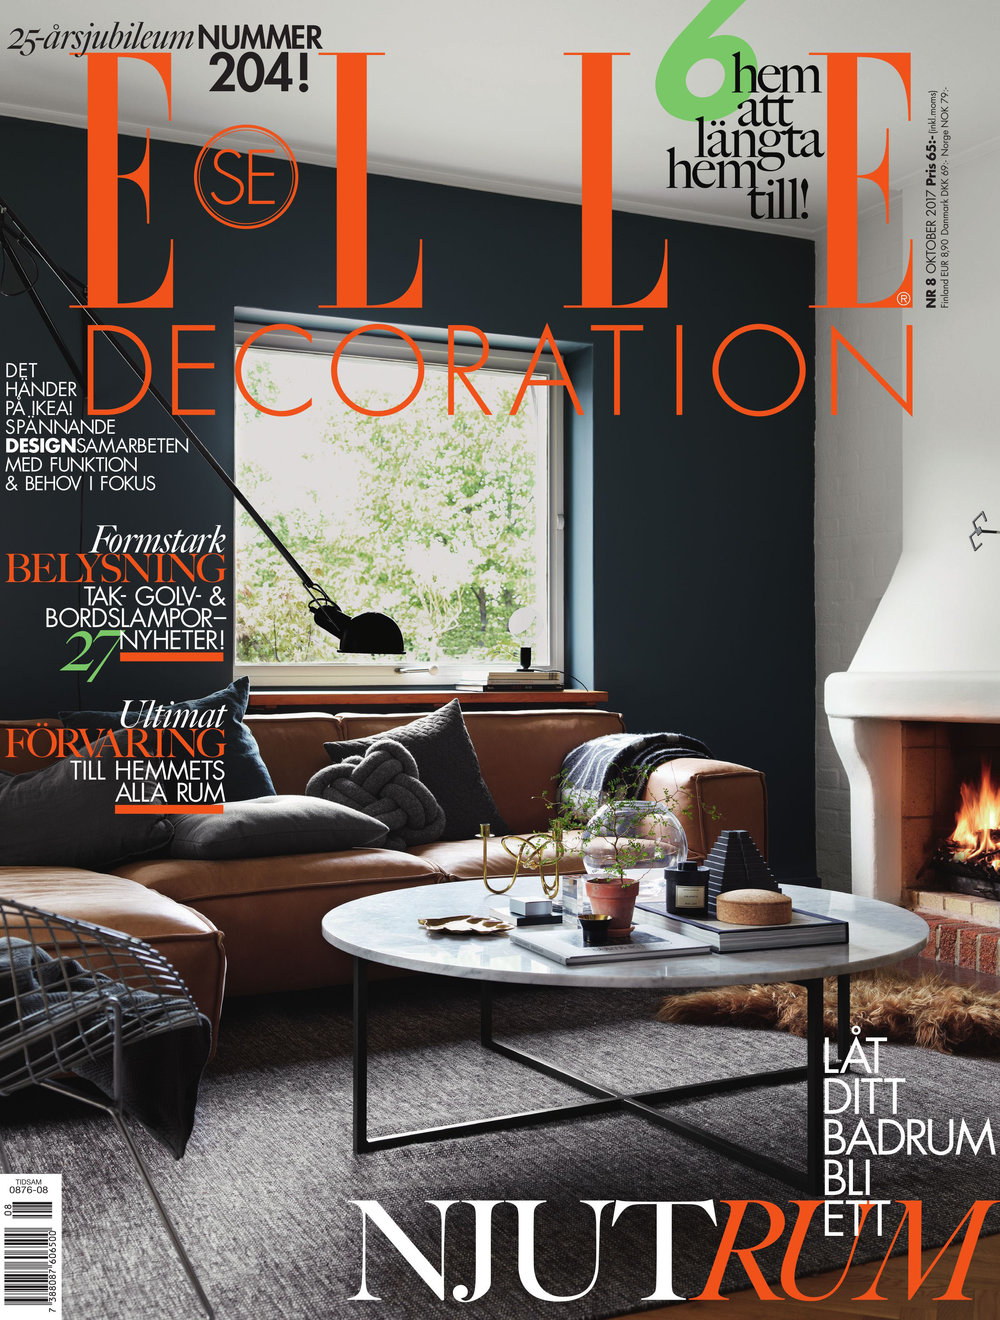 ELLE DECOR, ED Sweden, October 2017.